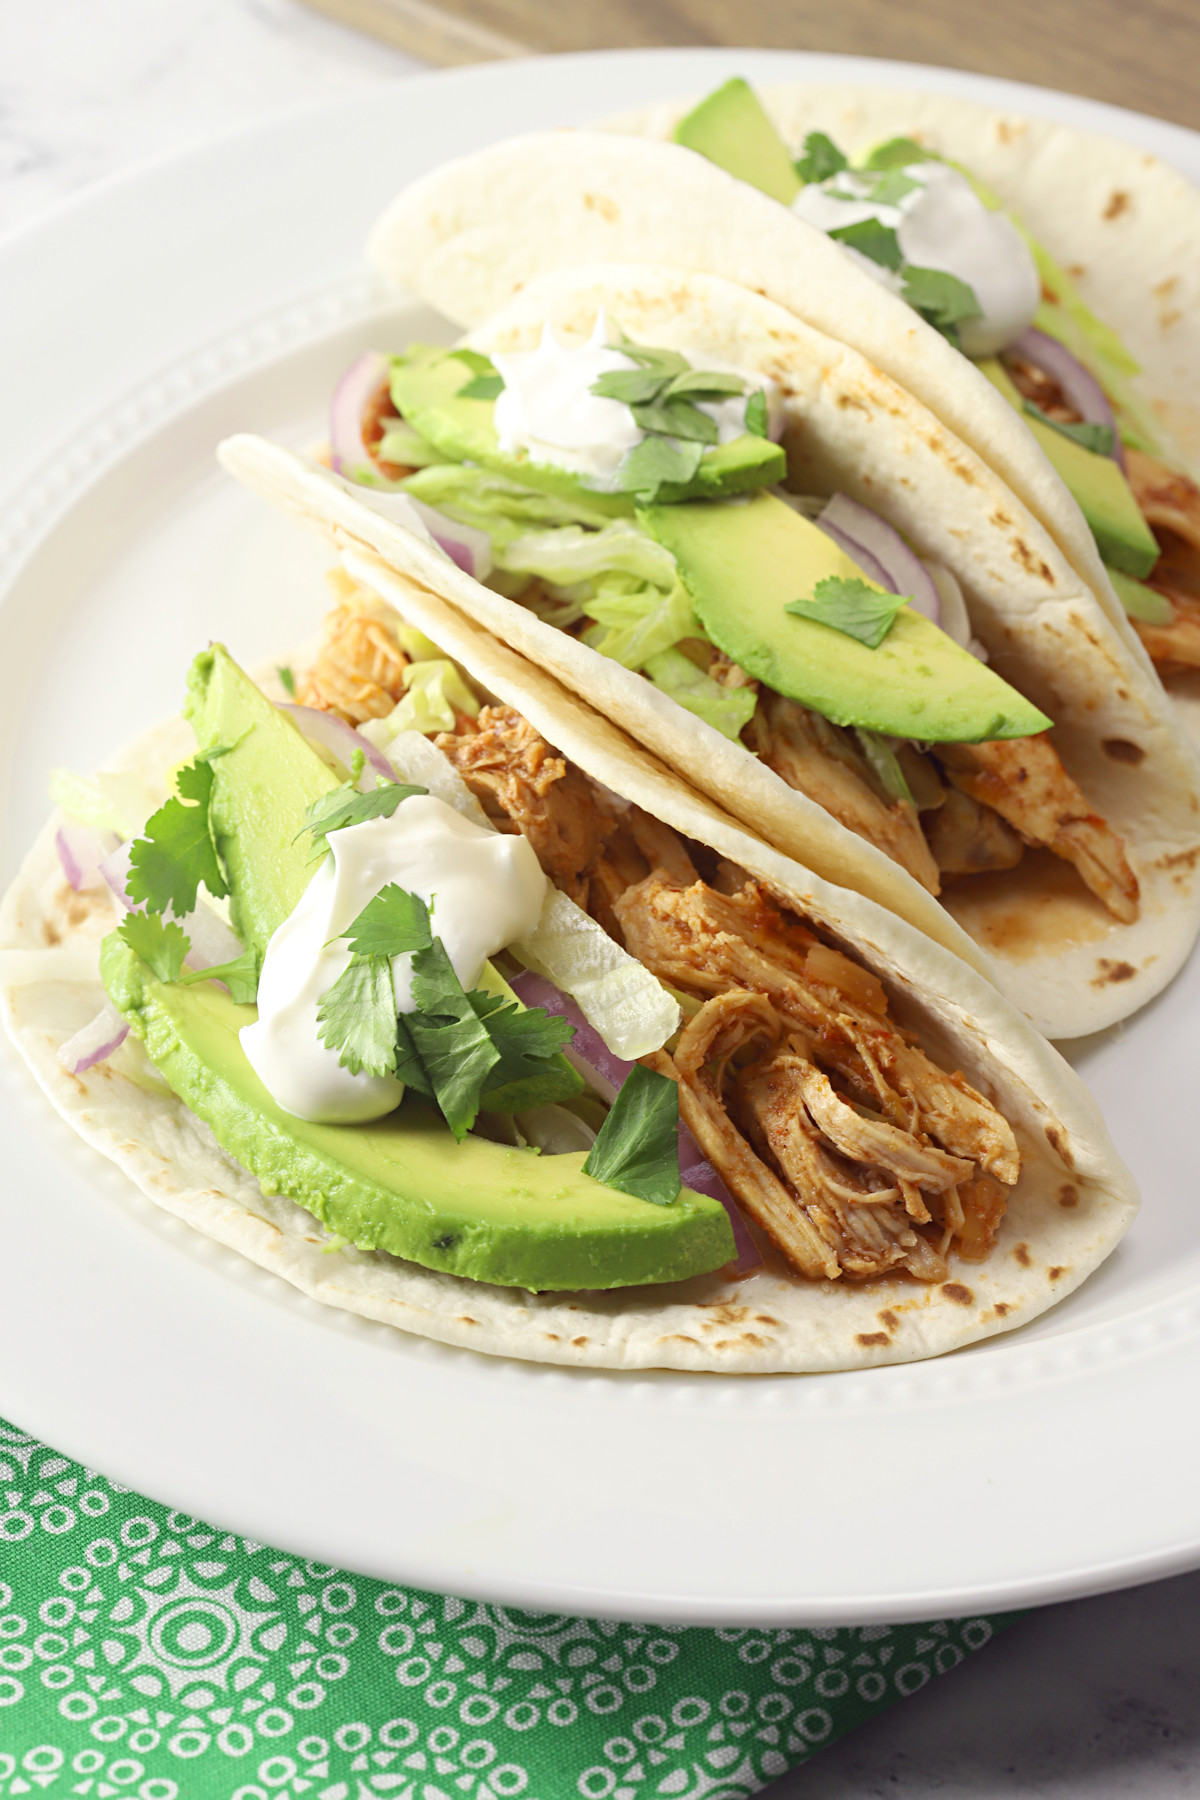 Three chicken tacos on a white plate.